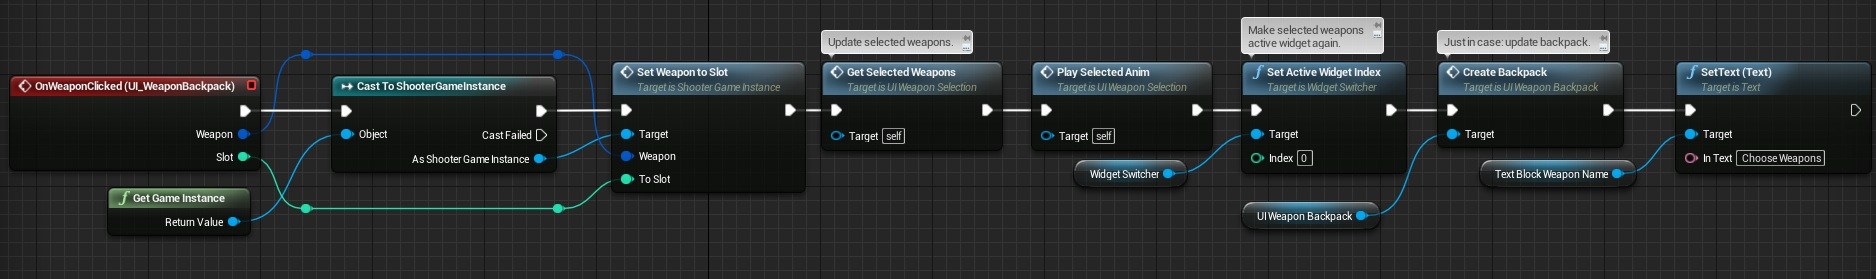 Weapon Selection Screen | Shooter Tutorial